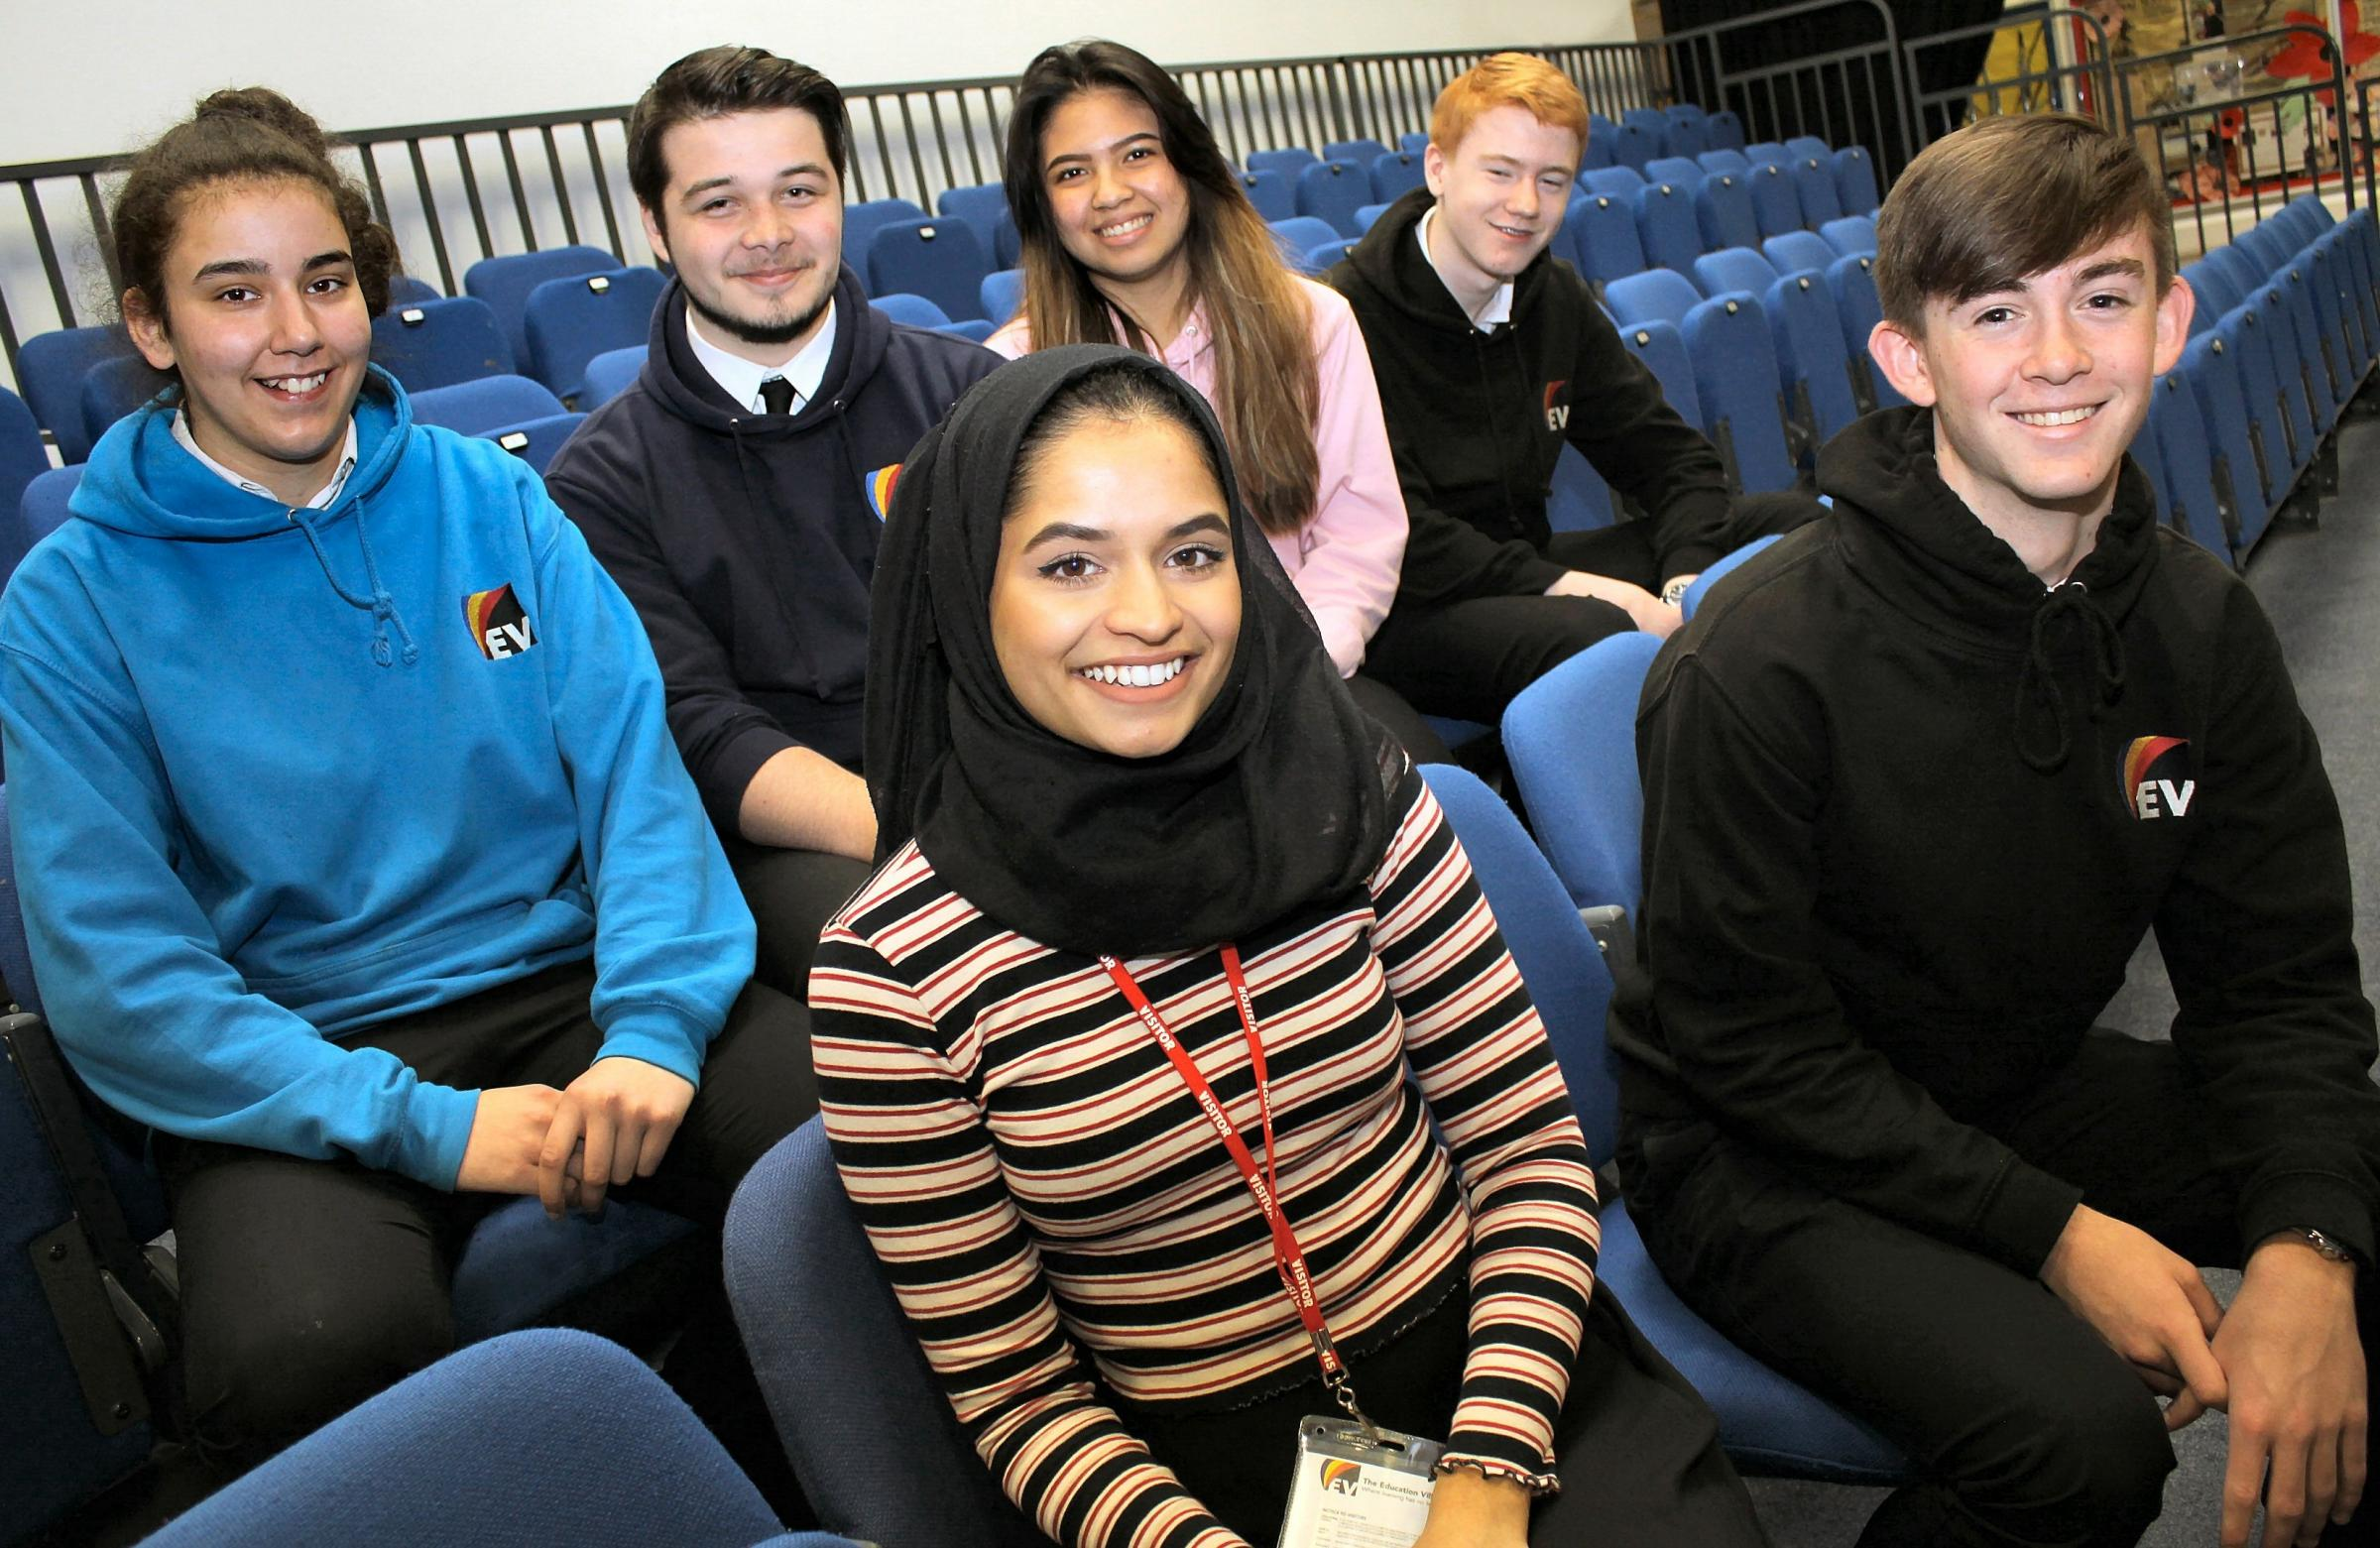 Darlington councillor Sharifa Rahman, 19, with GCSE students from Haughton Academy, from left, Tia Hans, 16, Jack Young, 16, Ashley Alivio, 16, Jack Clark, 16 and Luke Robinson, 16